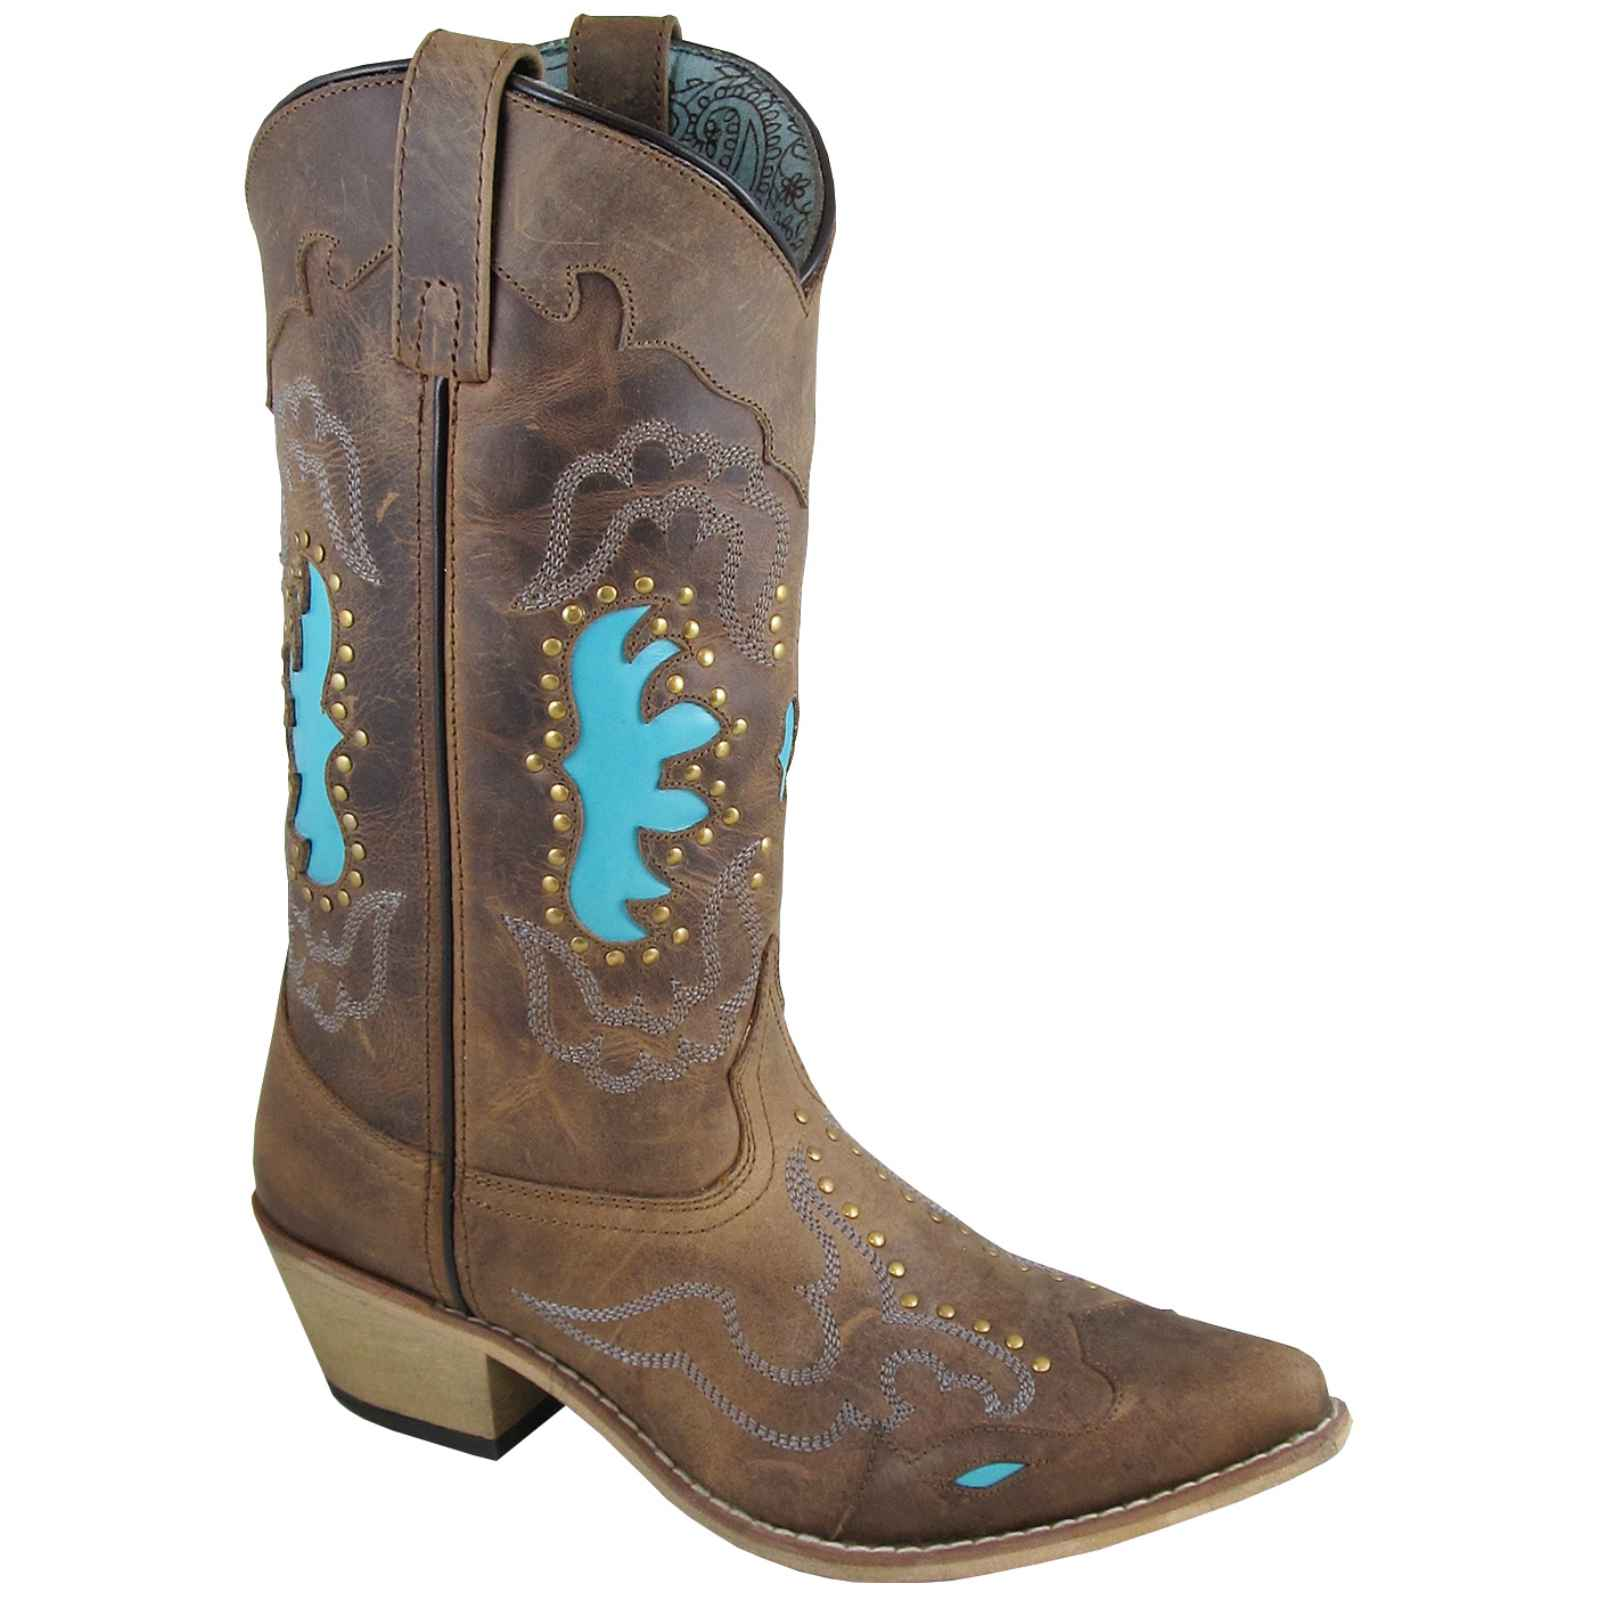 "Smoky Mountain Women's Moon Boot Bay 12"" Brown/Turquoise Leather Cowboy Boot Moon 6016 d08118"